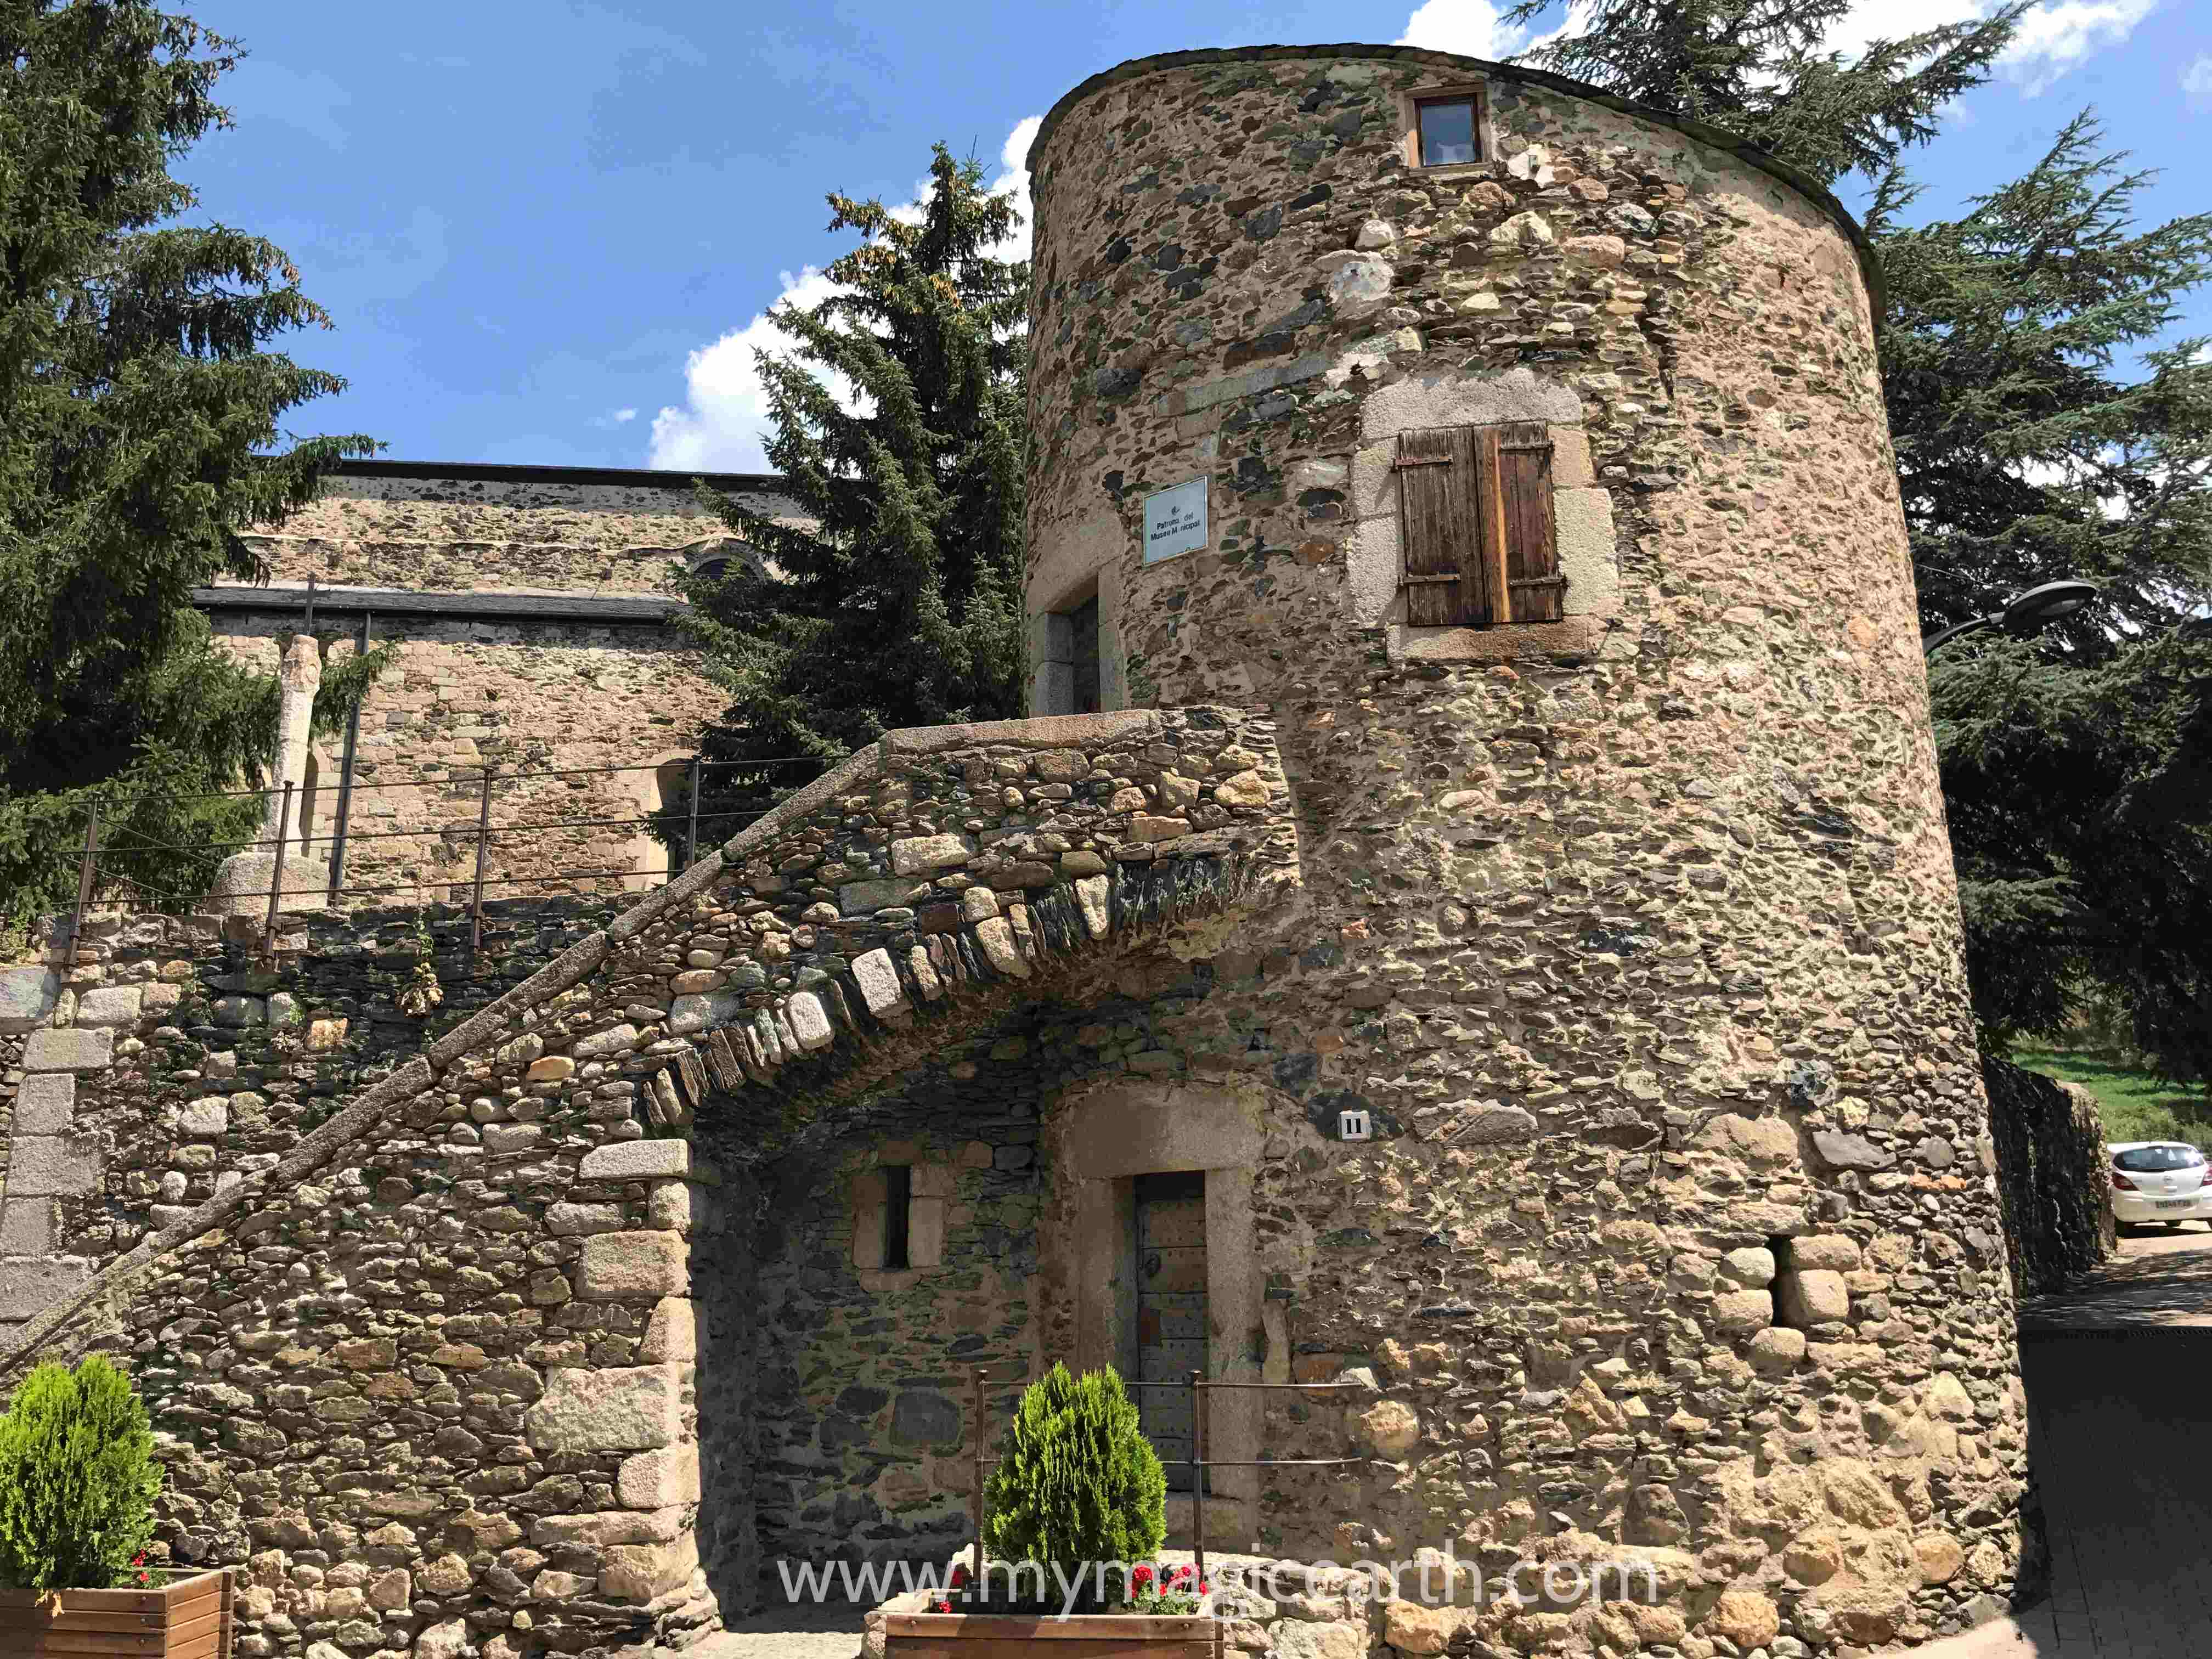 Castle in Llivia, Spain